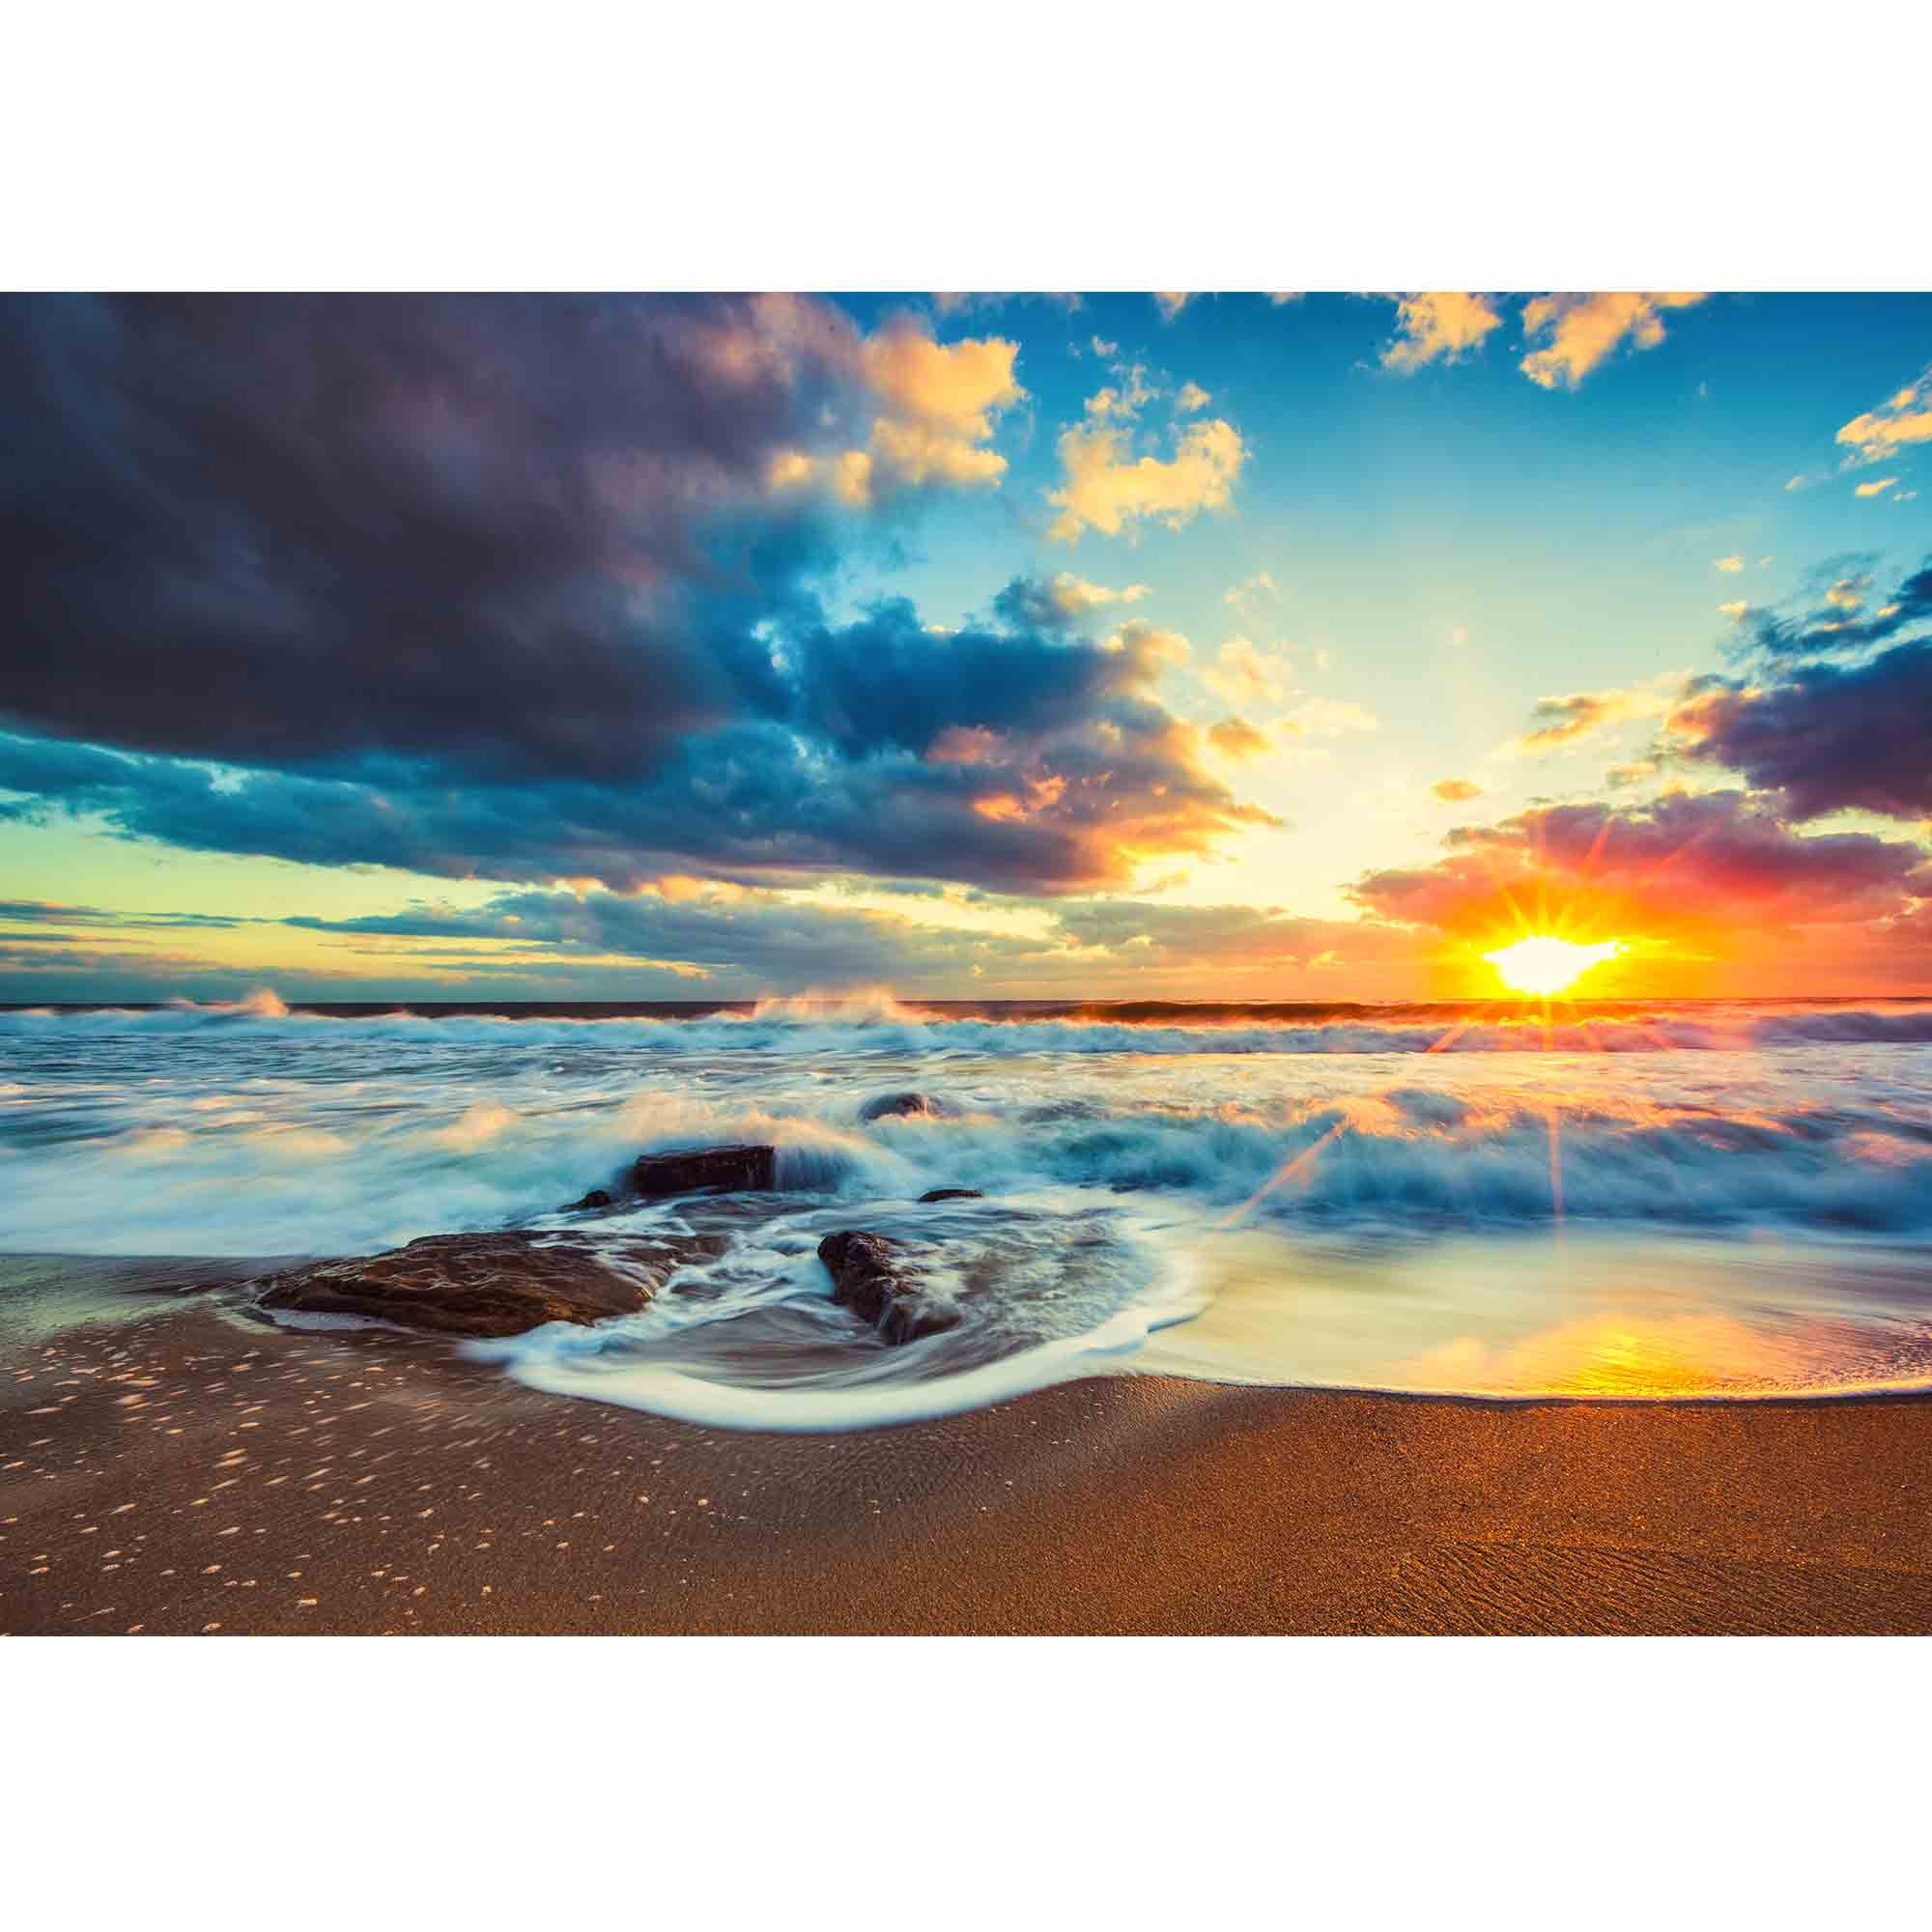 wall26 - Beautiful Cloudscape Over The Sea, Sunrise Shot - Removable Wall Mural | Self-Adhesive Large Wallpaper - 66x96 inches by wall26 (Image #2)